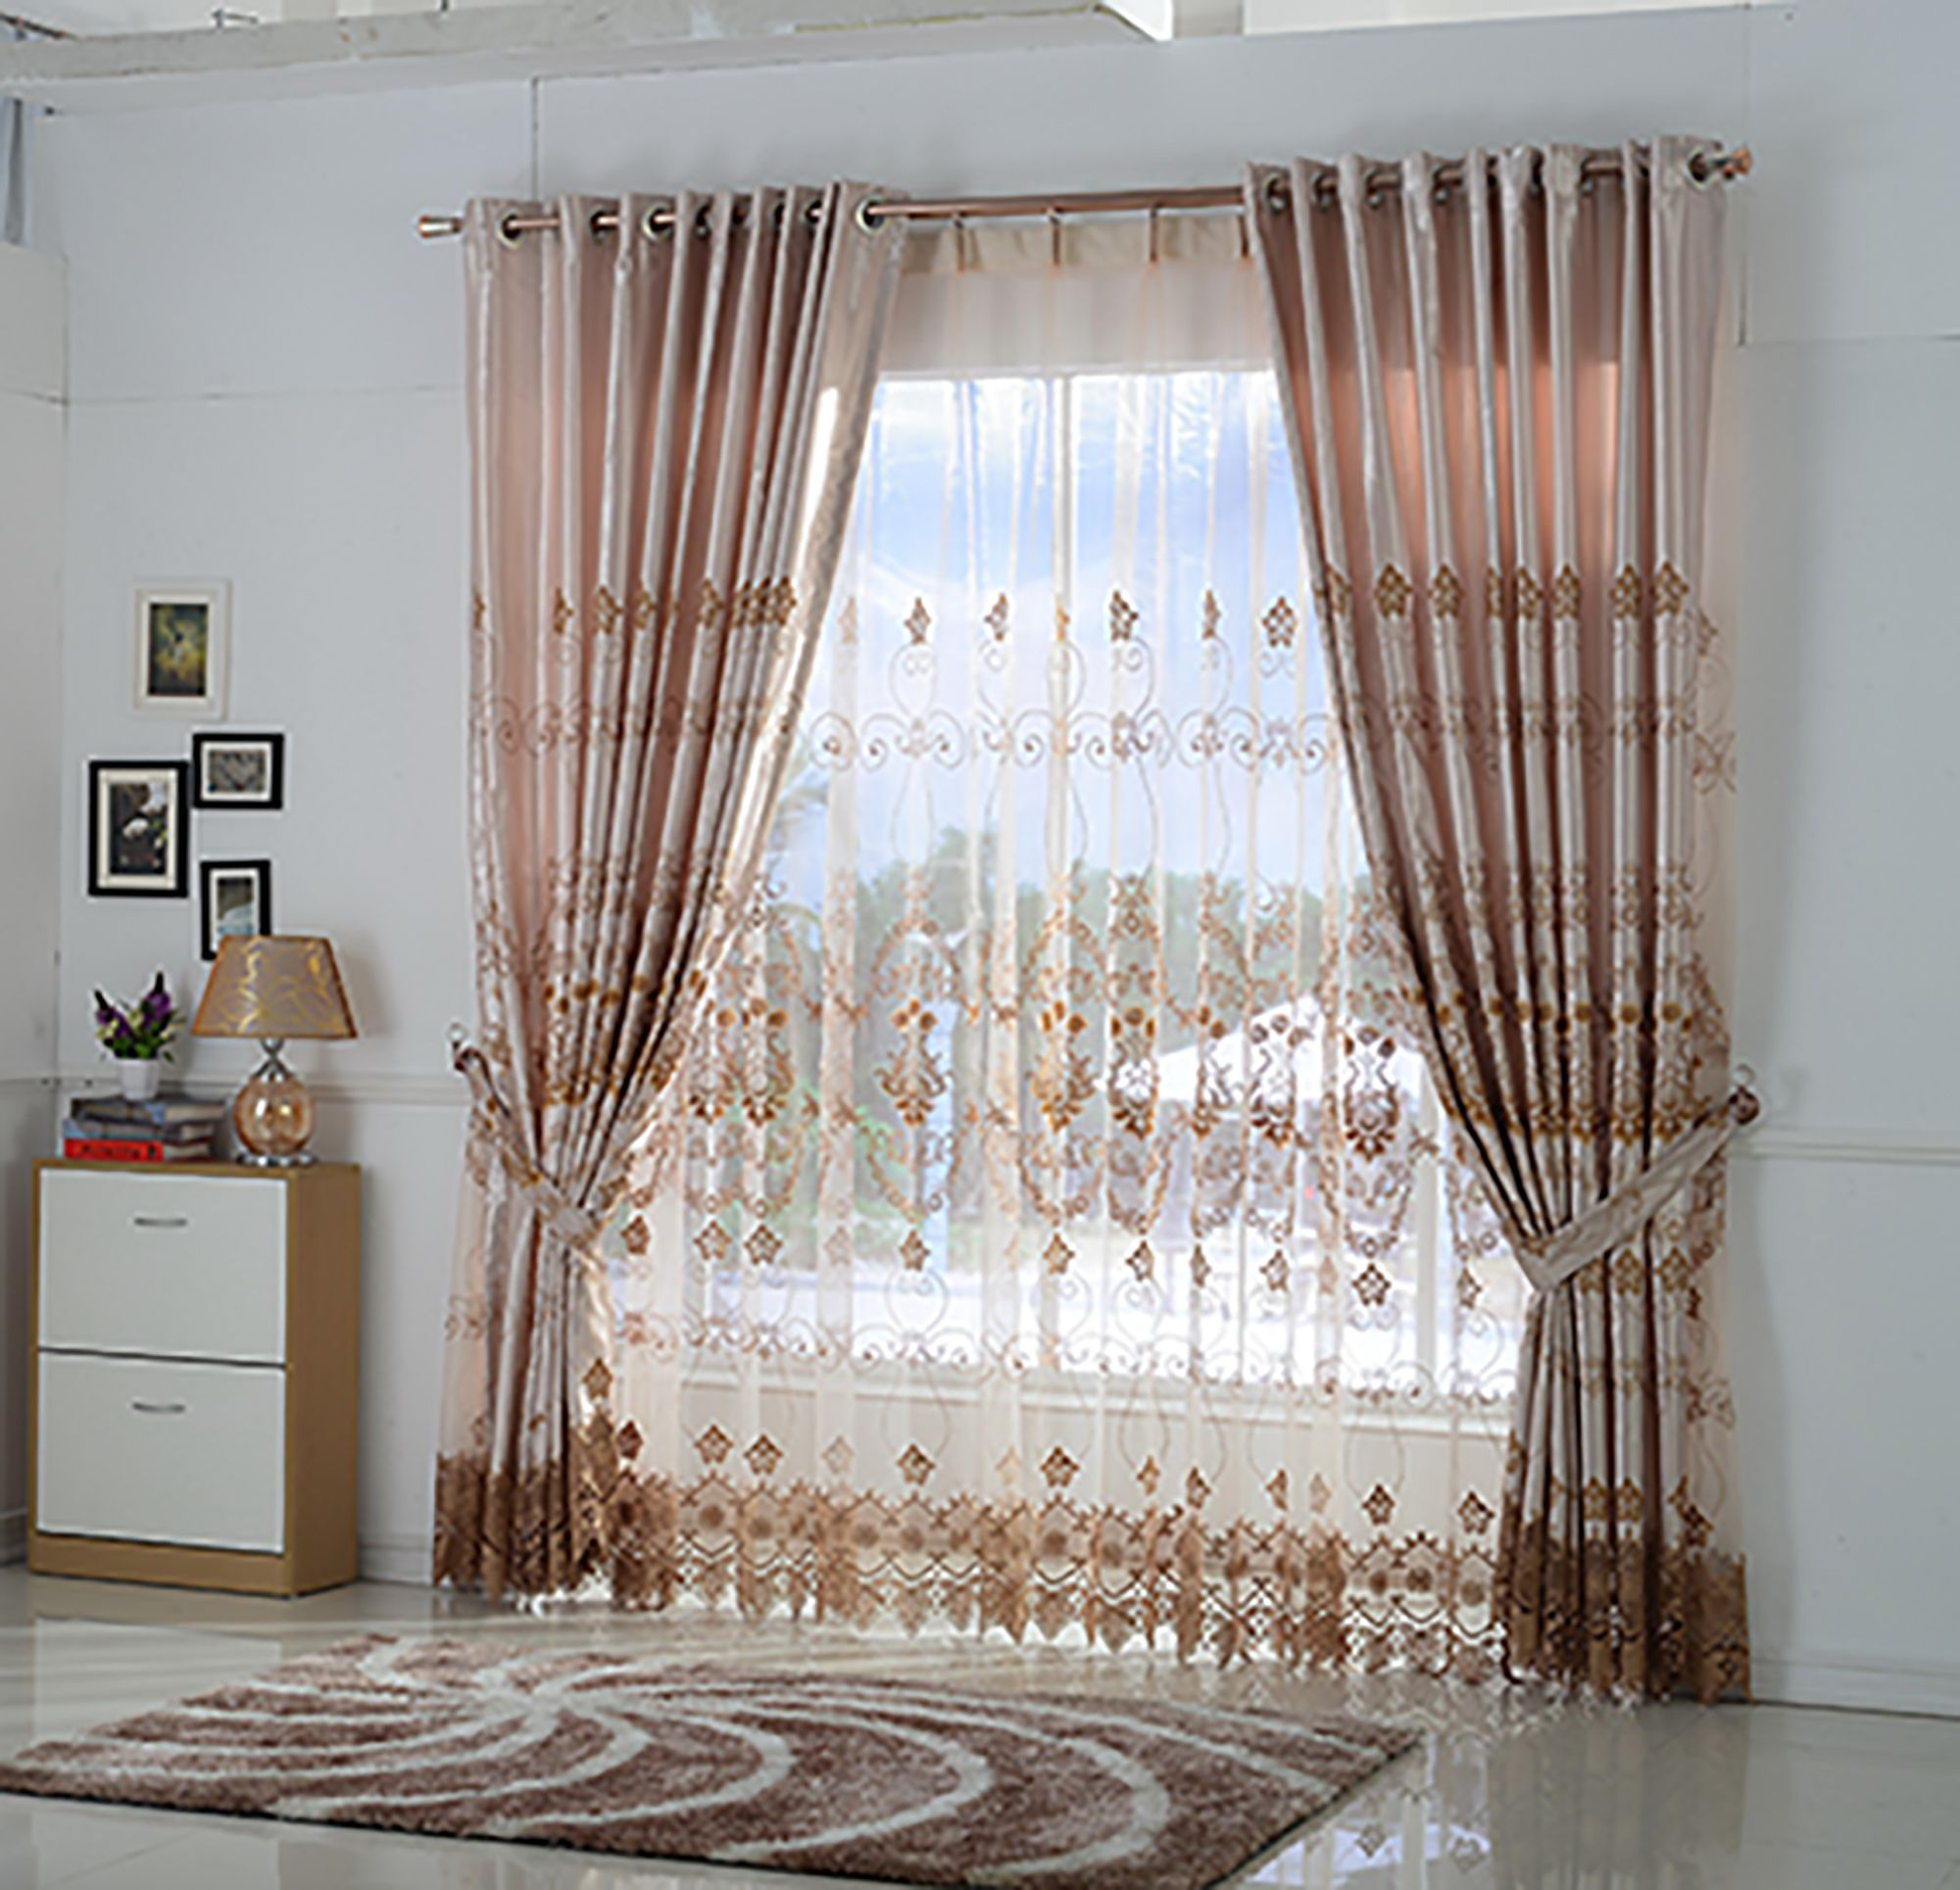 Modern Curtain Rod Set Match Curtain Color To Decor Living Room